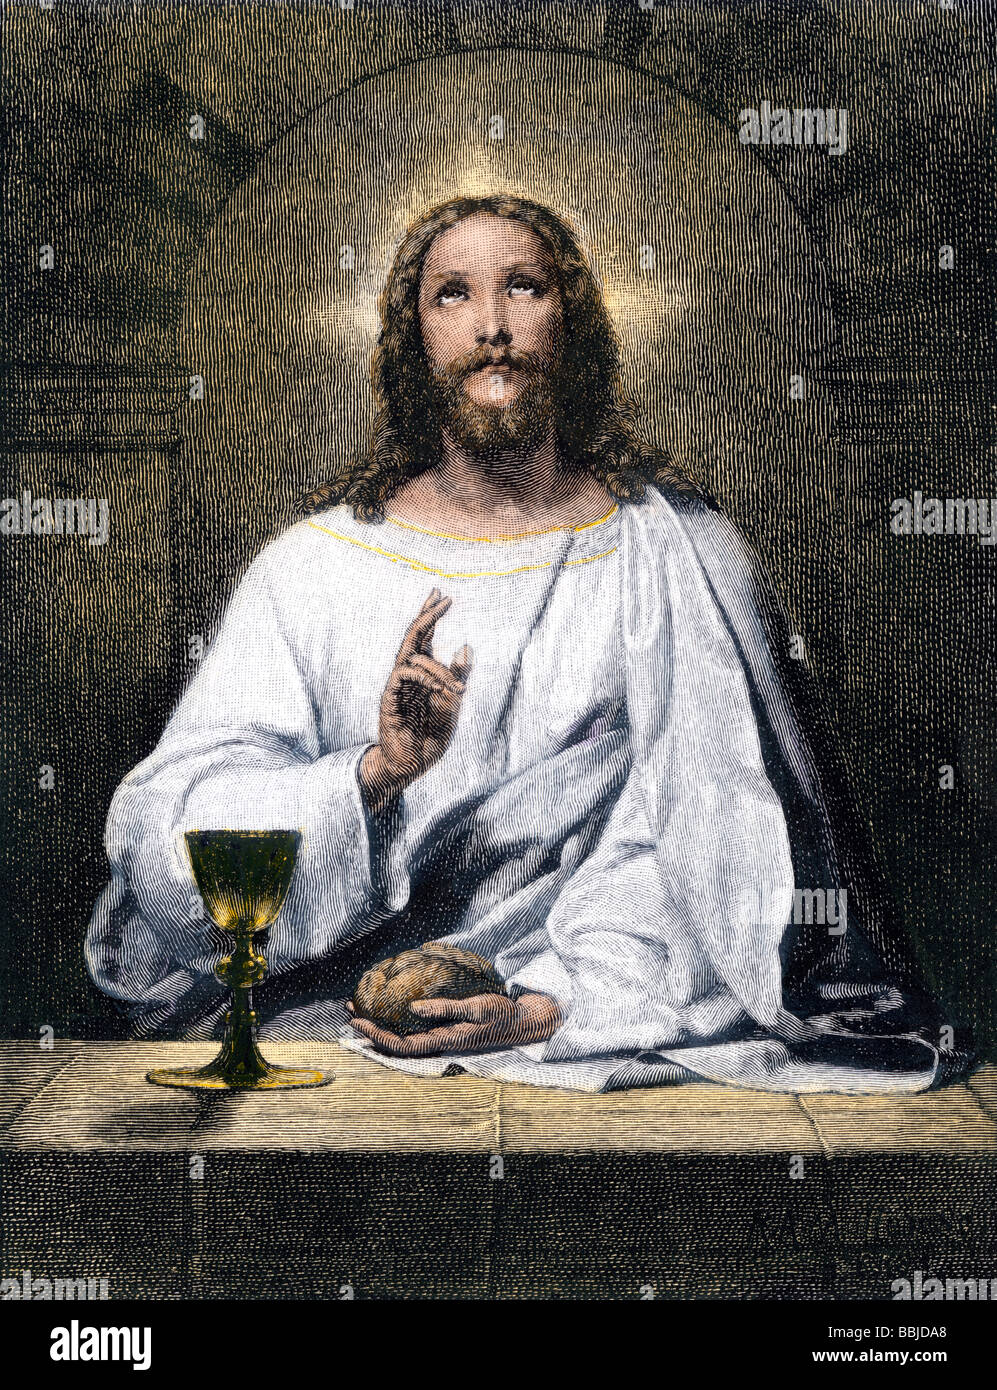 Jesus blessing bread and wine at Emmaus. Hand-colored woodcut - Stock Image